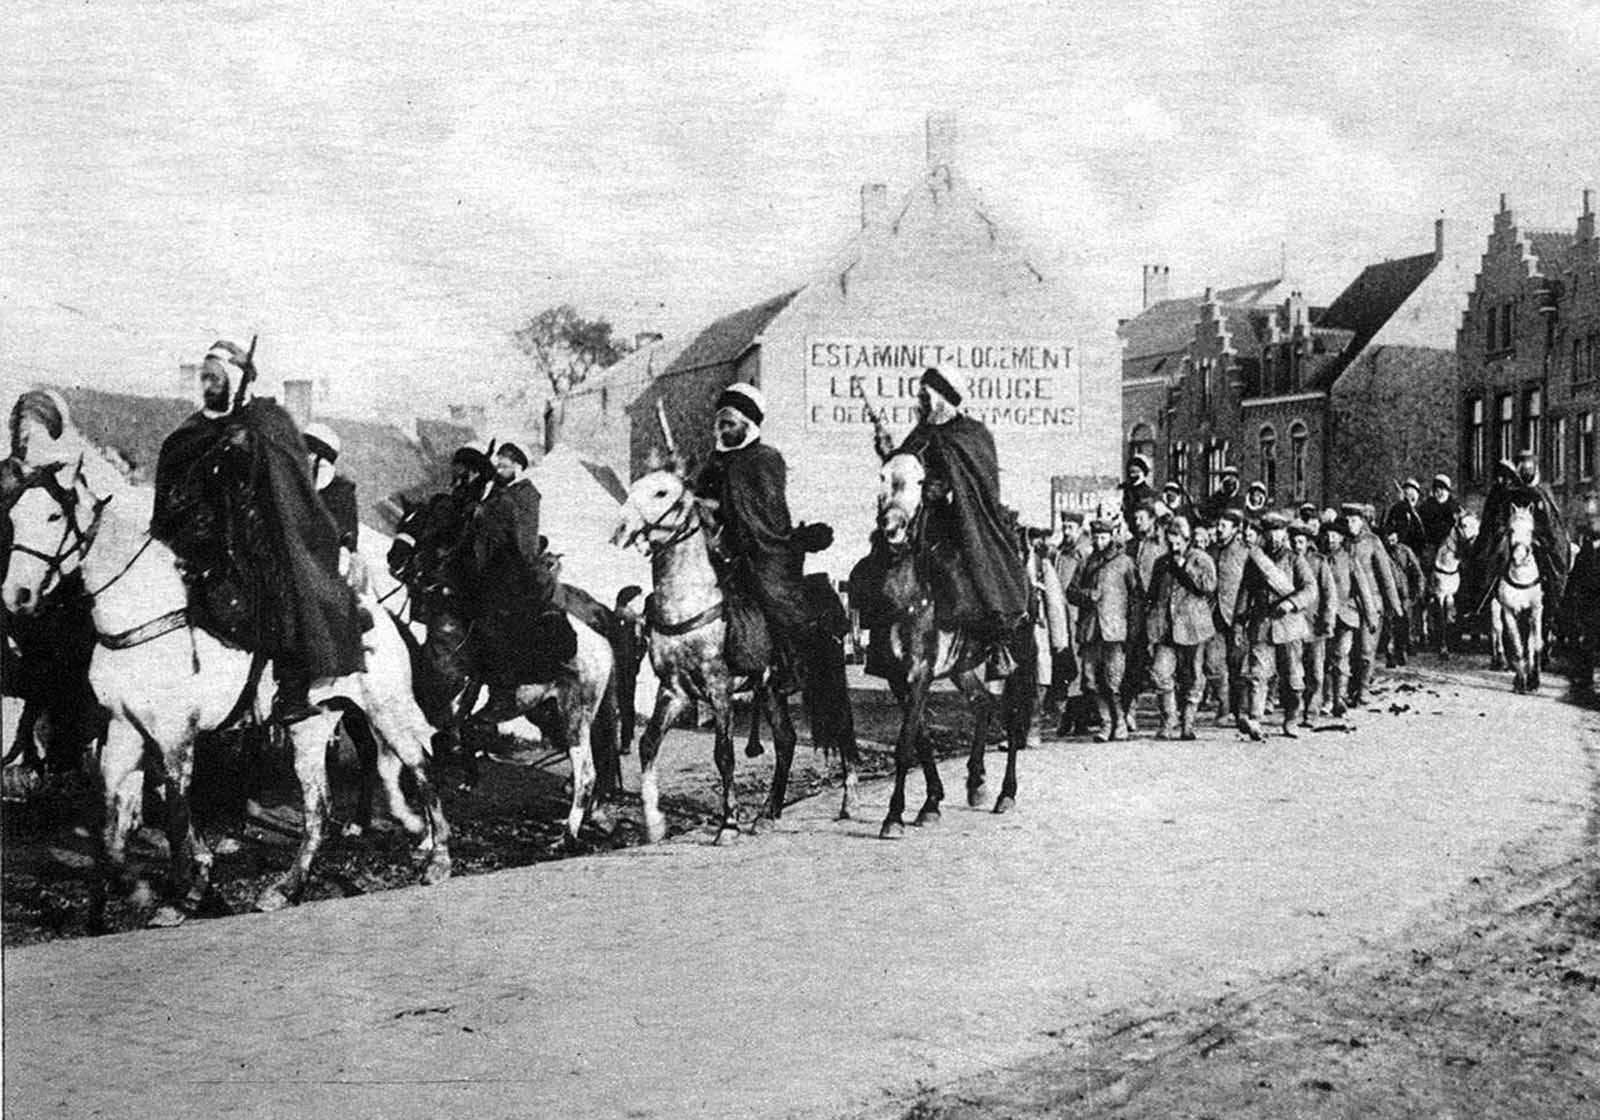 Algerian cavalry attached to the French Army, escorting a group of German prisoners taken in fighting in the west of Belgium.